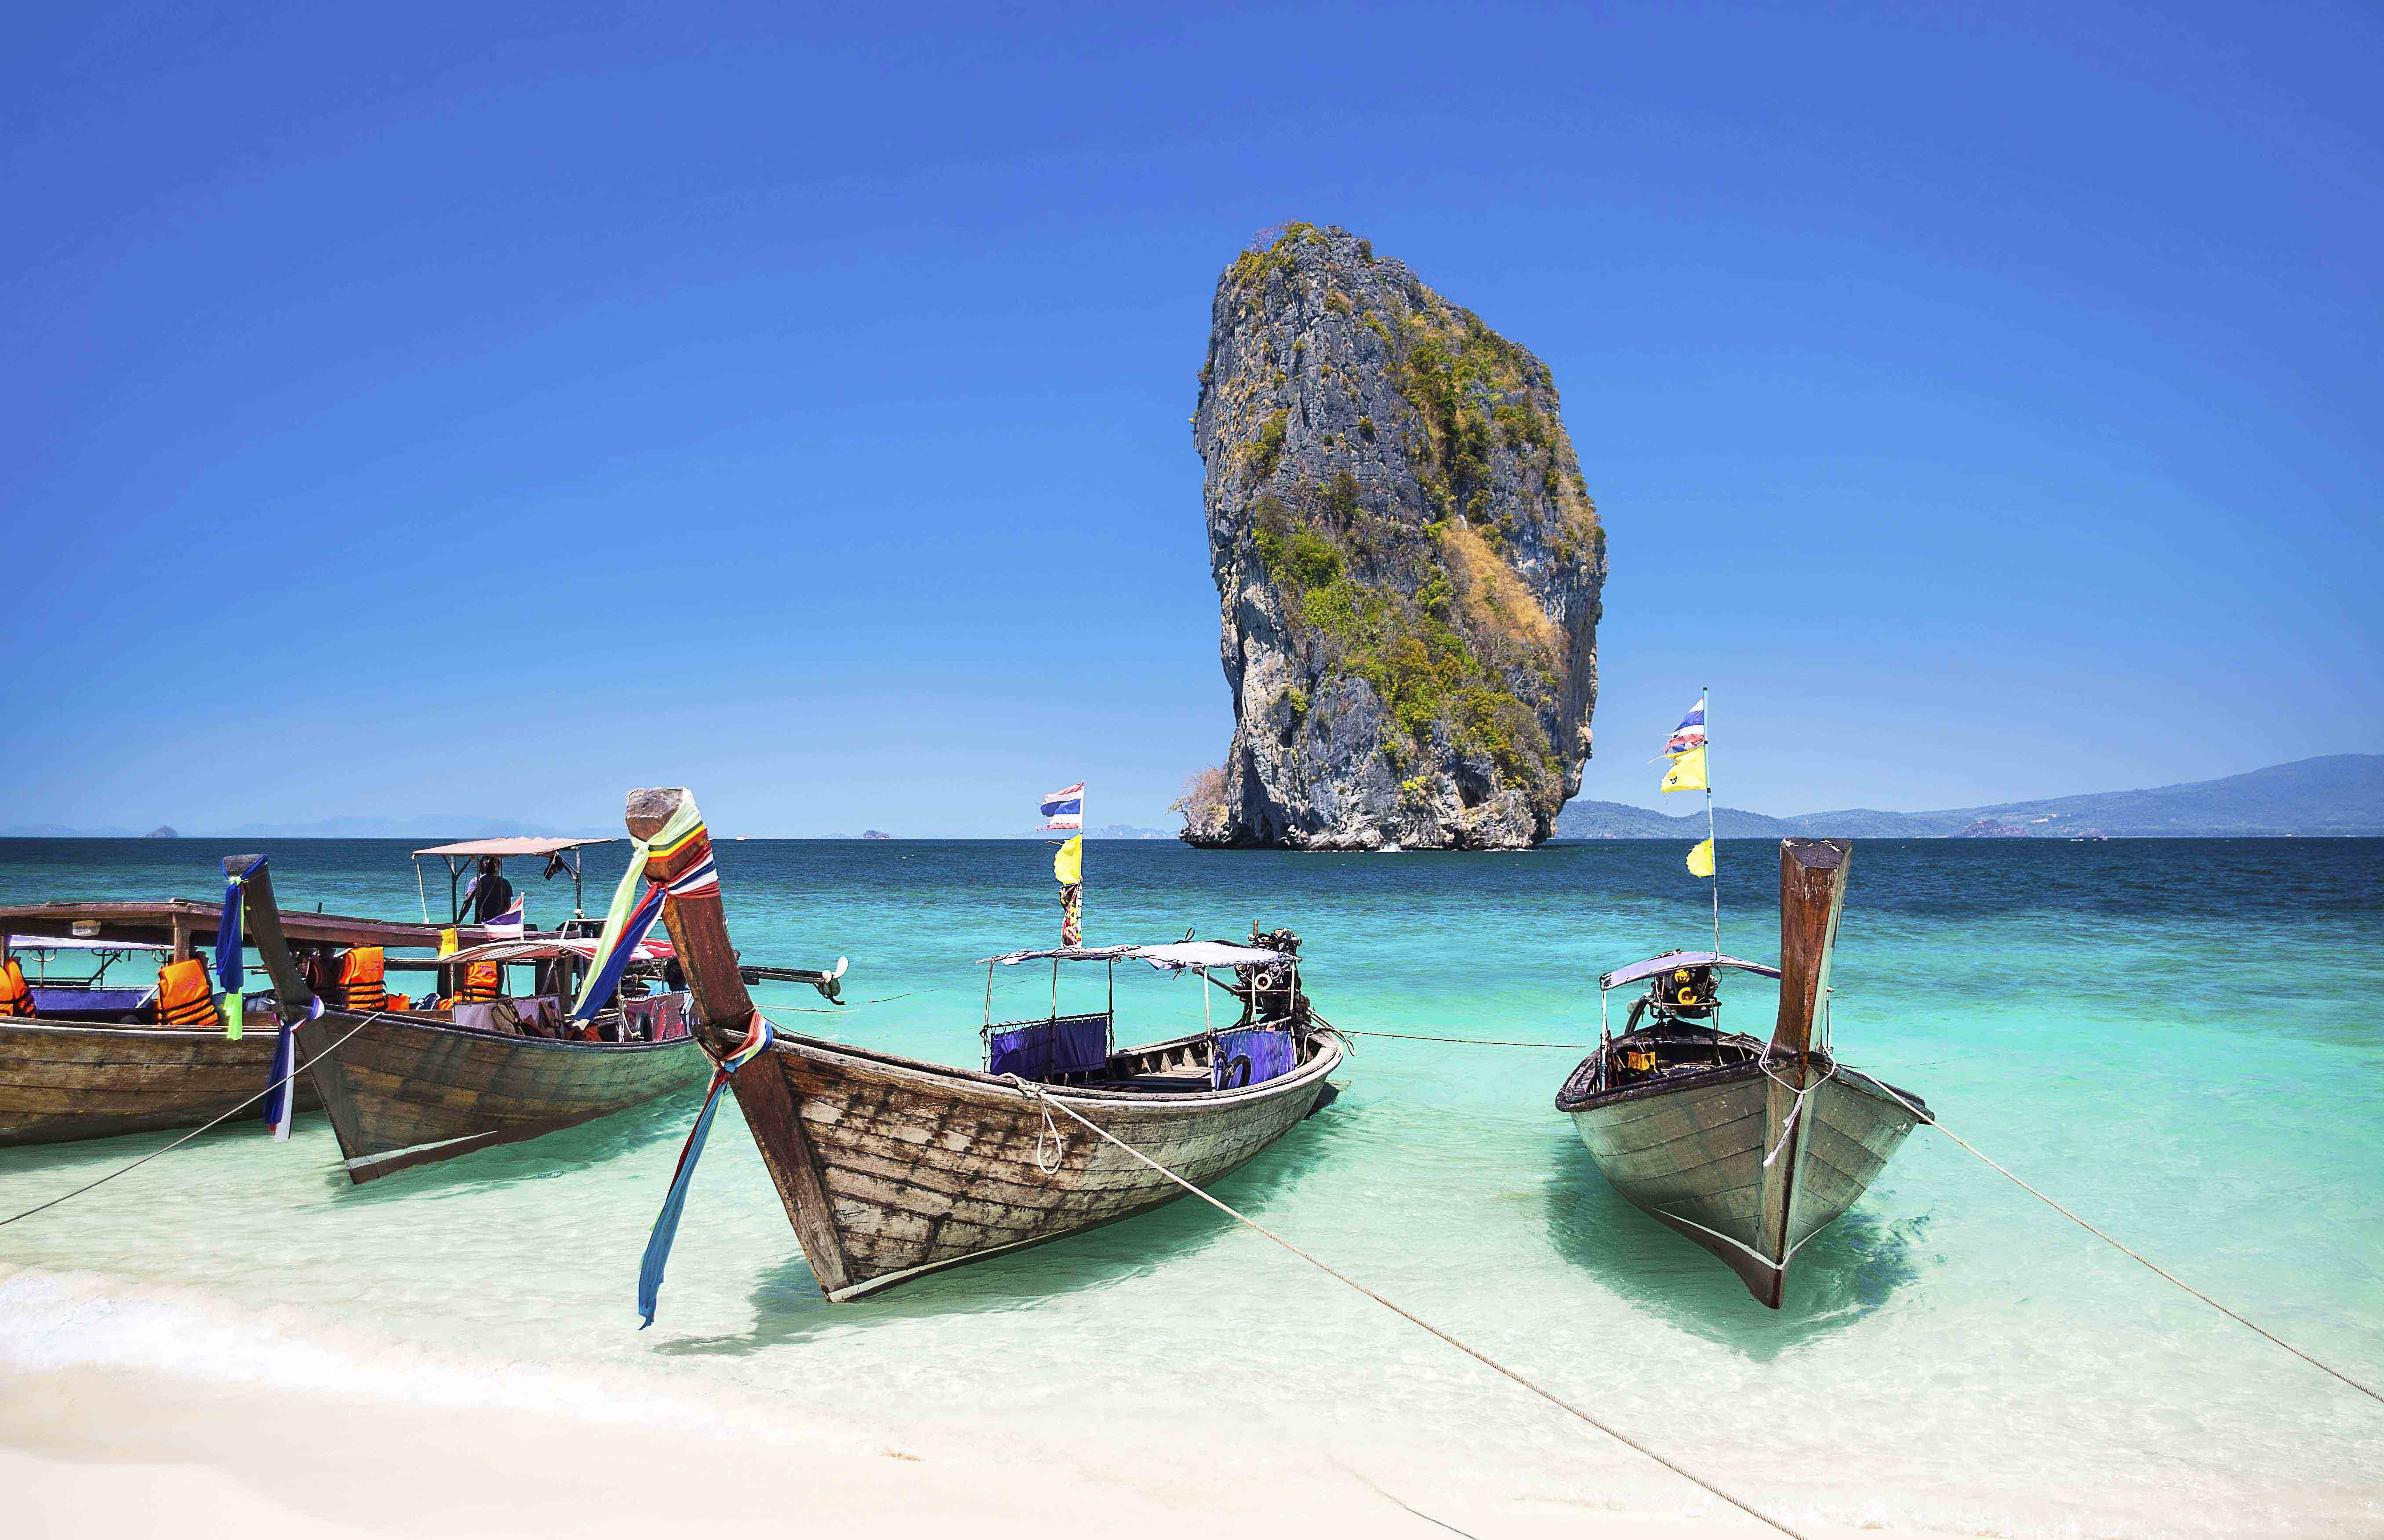 Phuket in Thailand is one of the stops on the MSC World Cruise